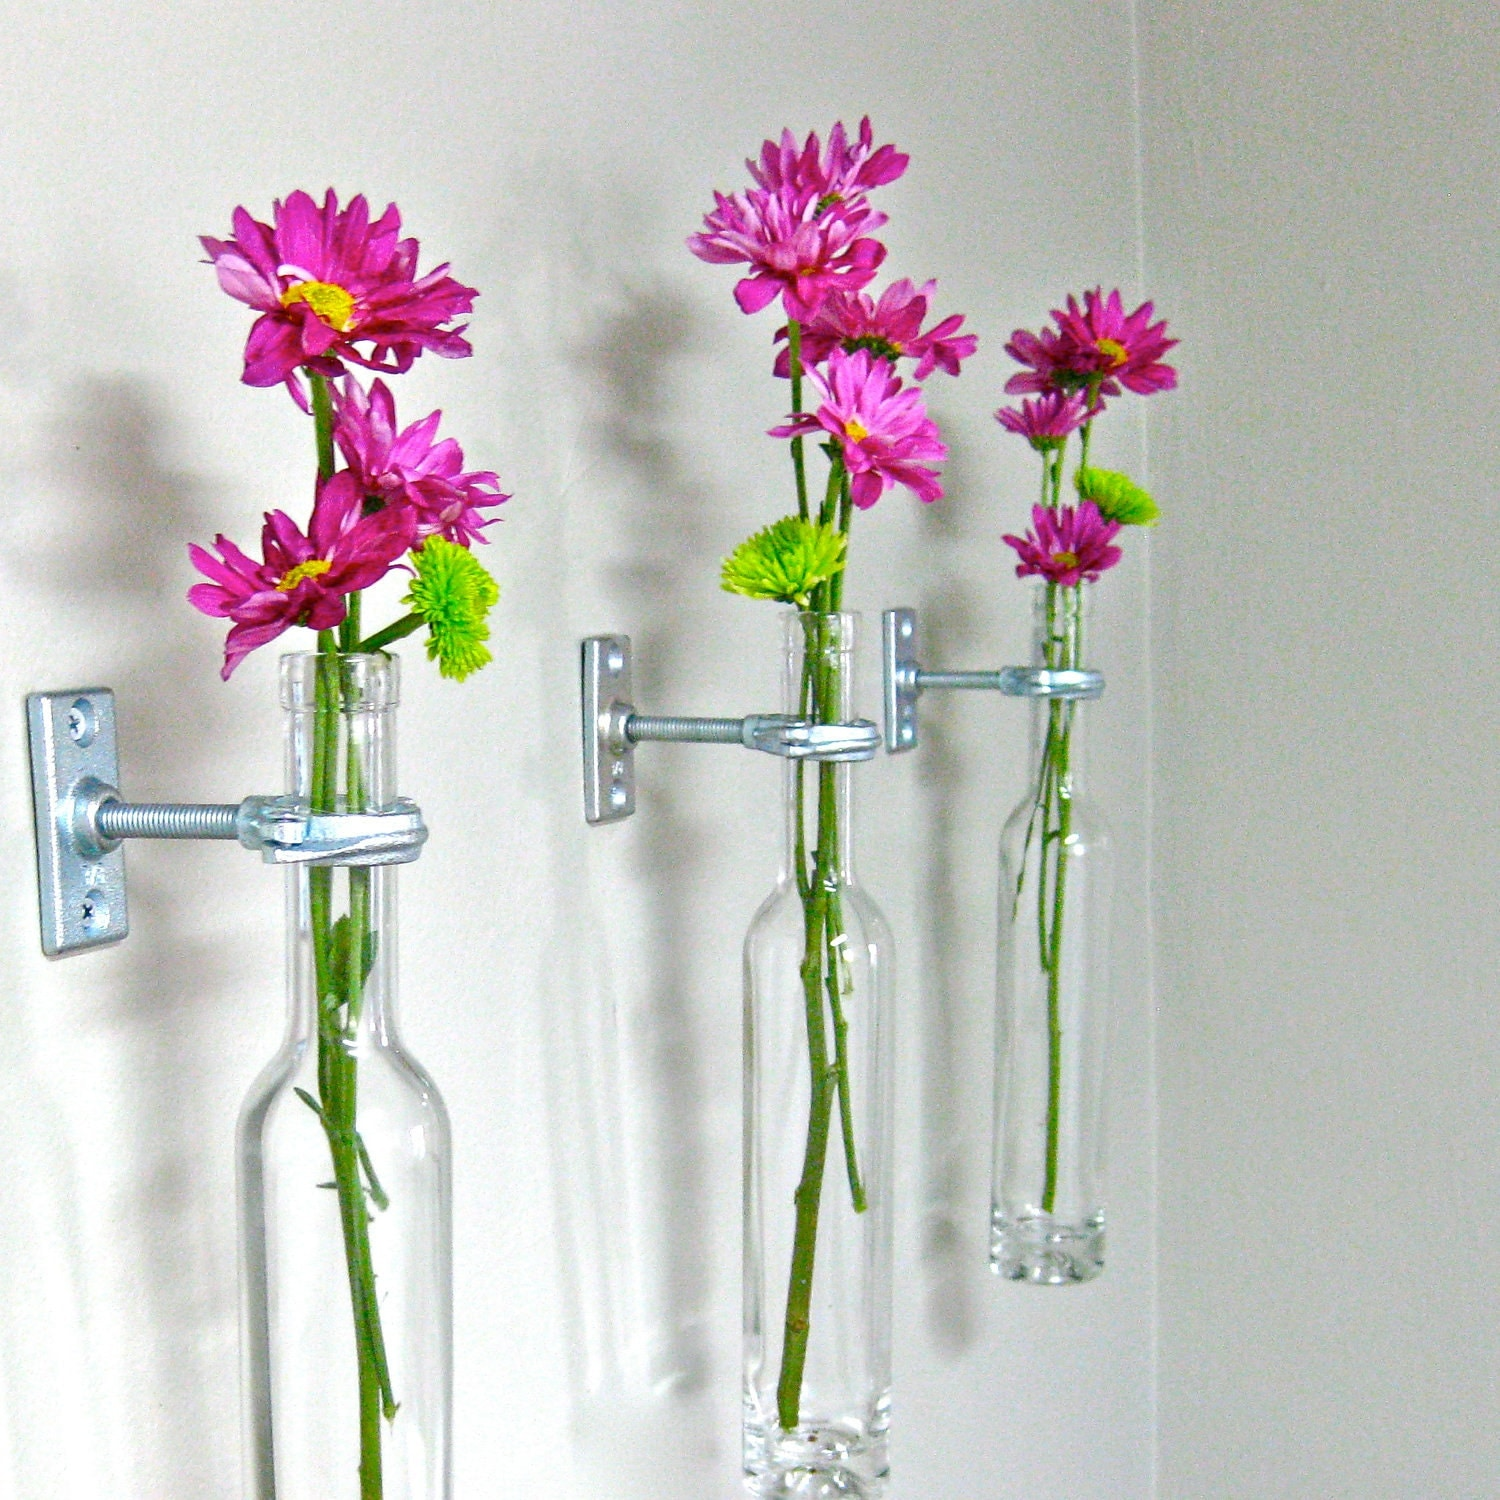 4 Wine Bottle Wall Flower Vases Wall Sconce Wall Decor